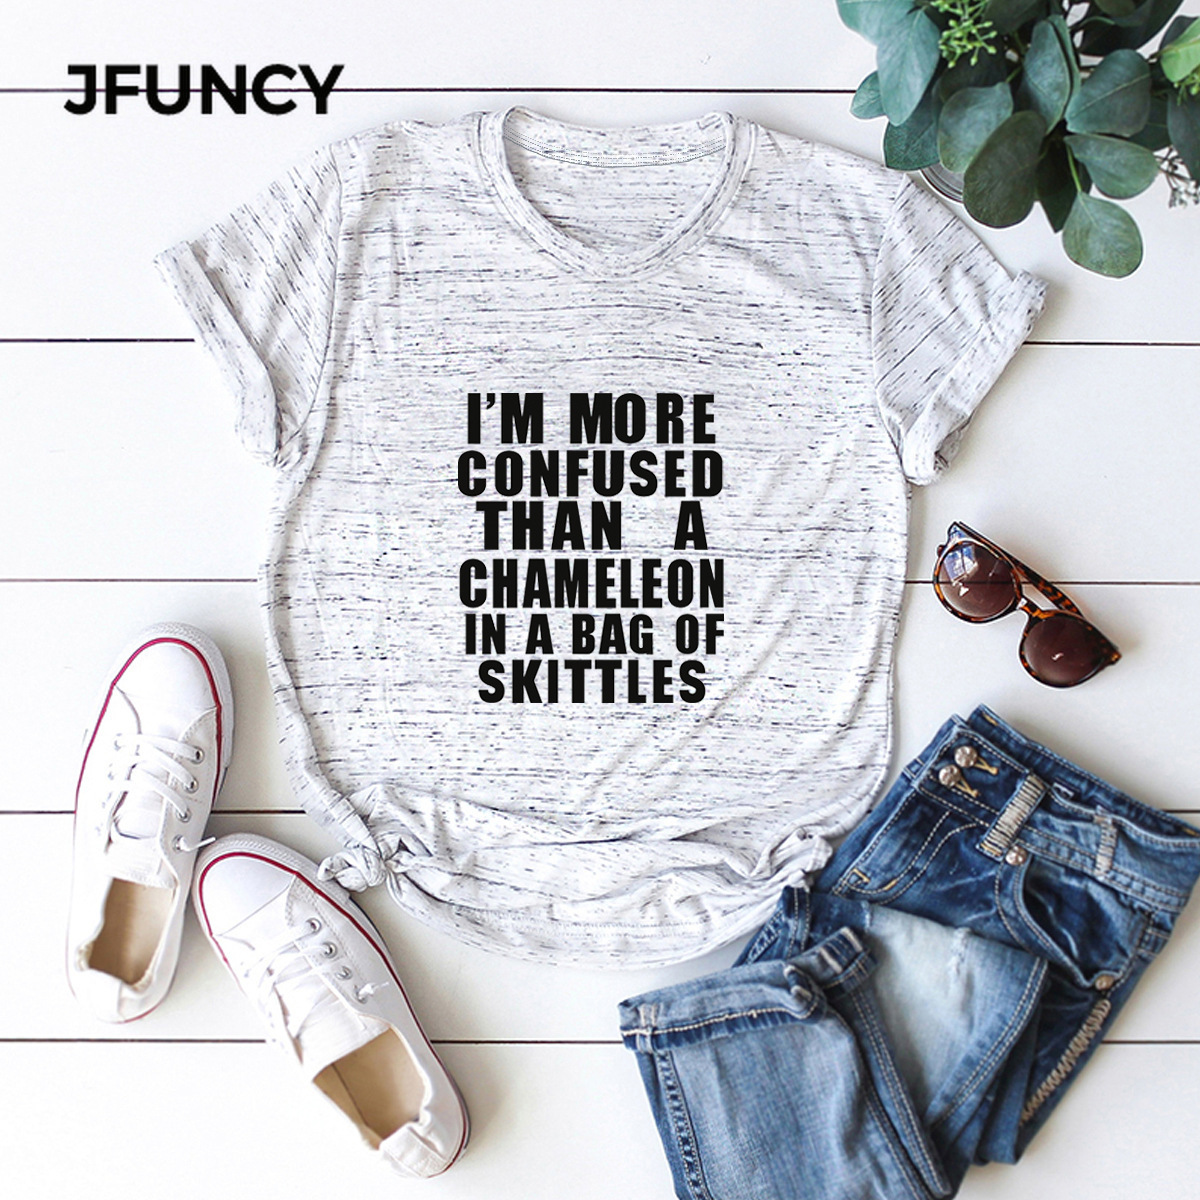 JFUNCY 2020 100% Cotton Women T-Shirts Funny Letter Printed Tees Tops Plus Size Short Sleeve Summer Casual Tshirt Woman Shirts